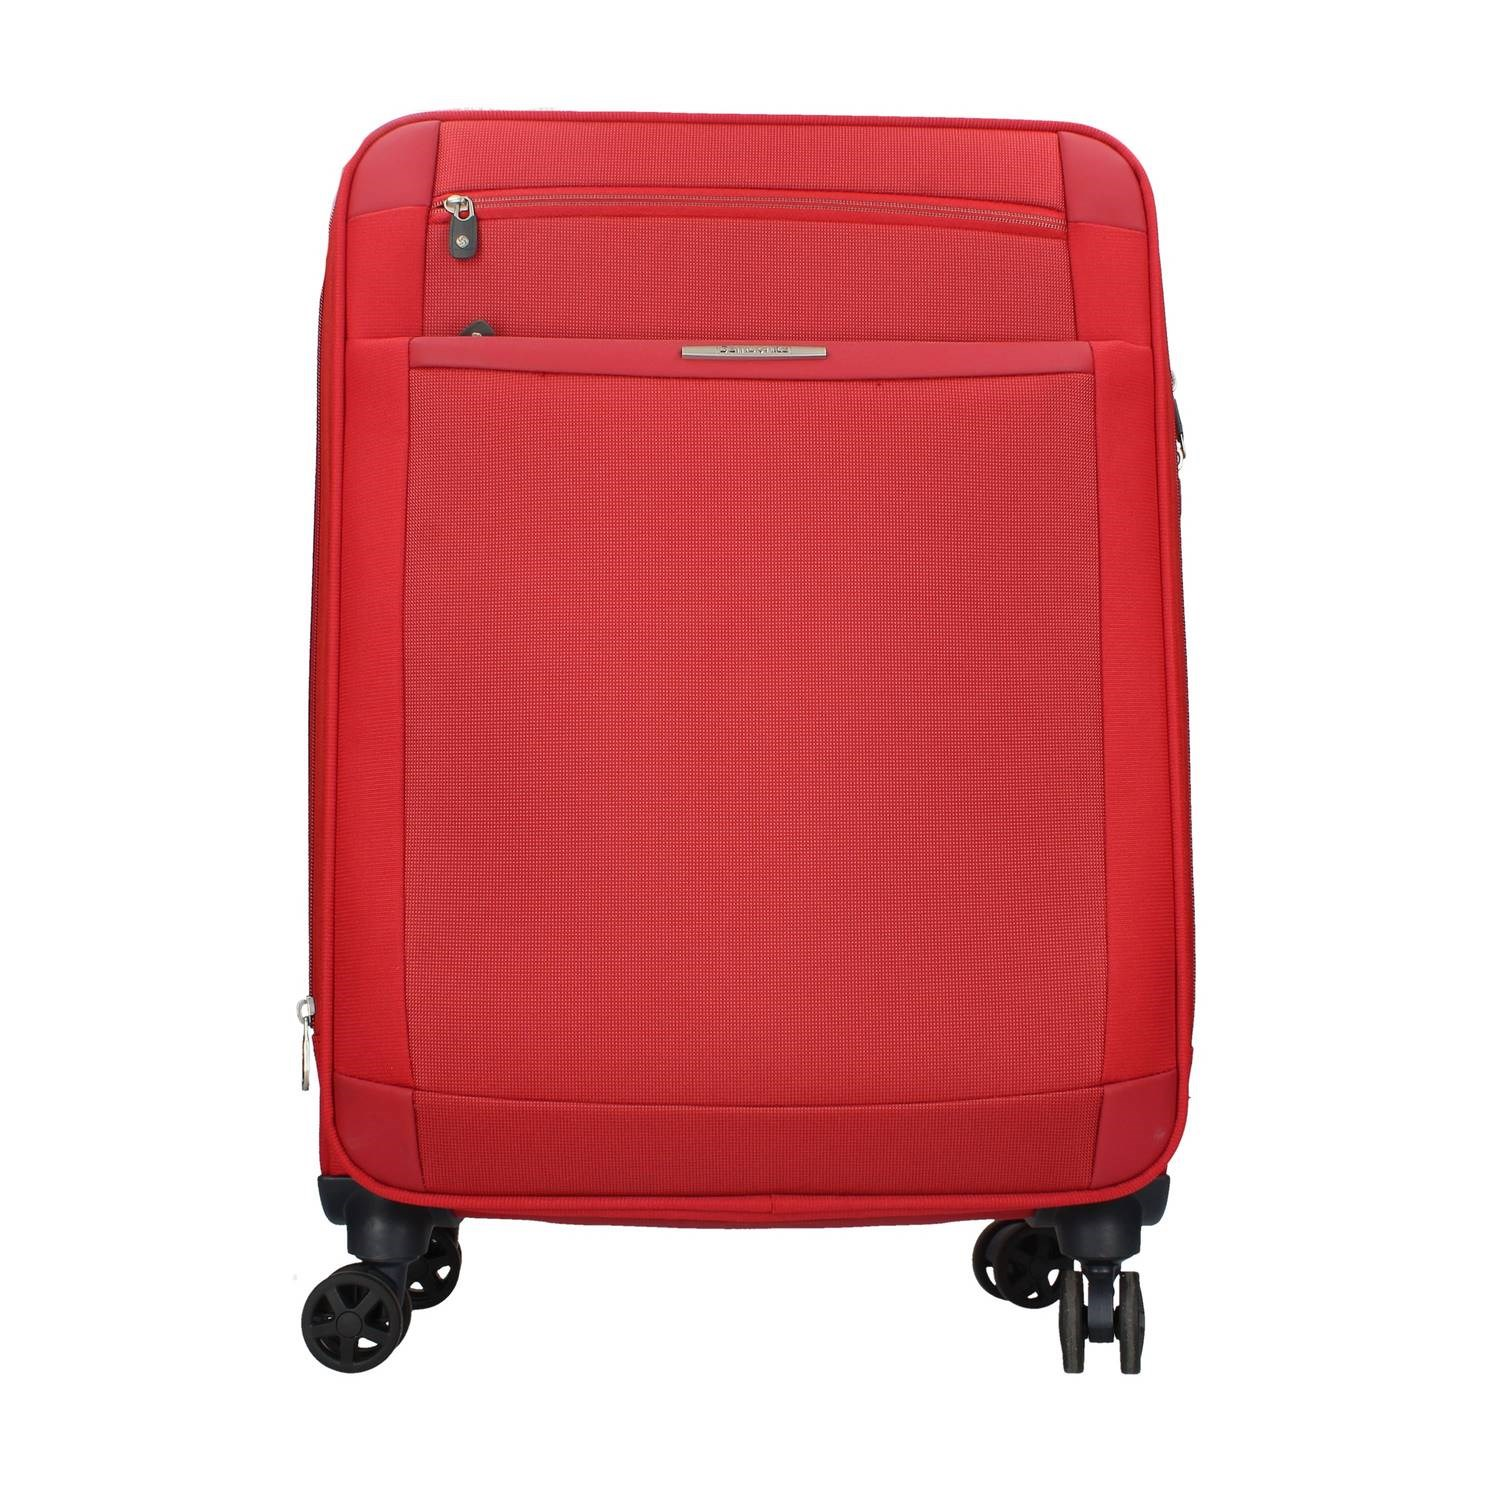 Samsonite 80d*004 Red Suitcases Unisex